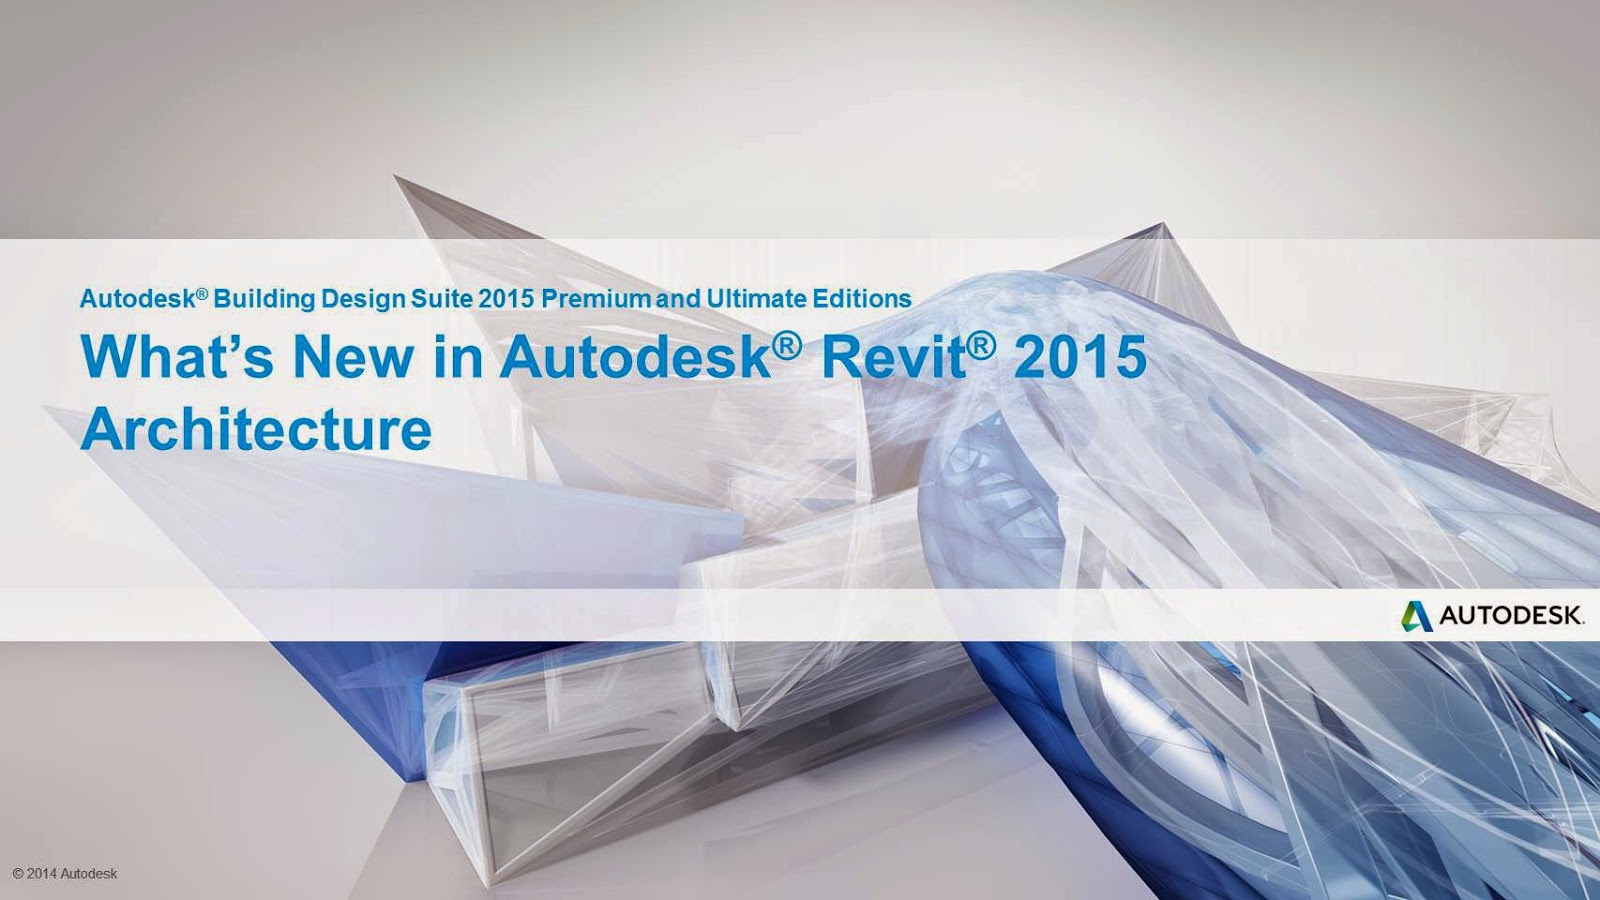 New features in the Autodesk Revit 2015